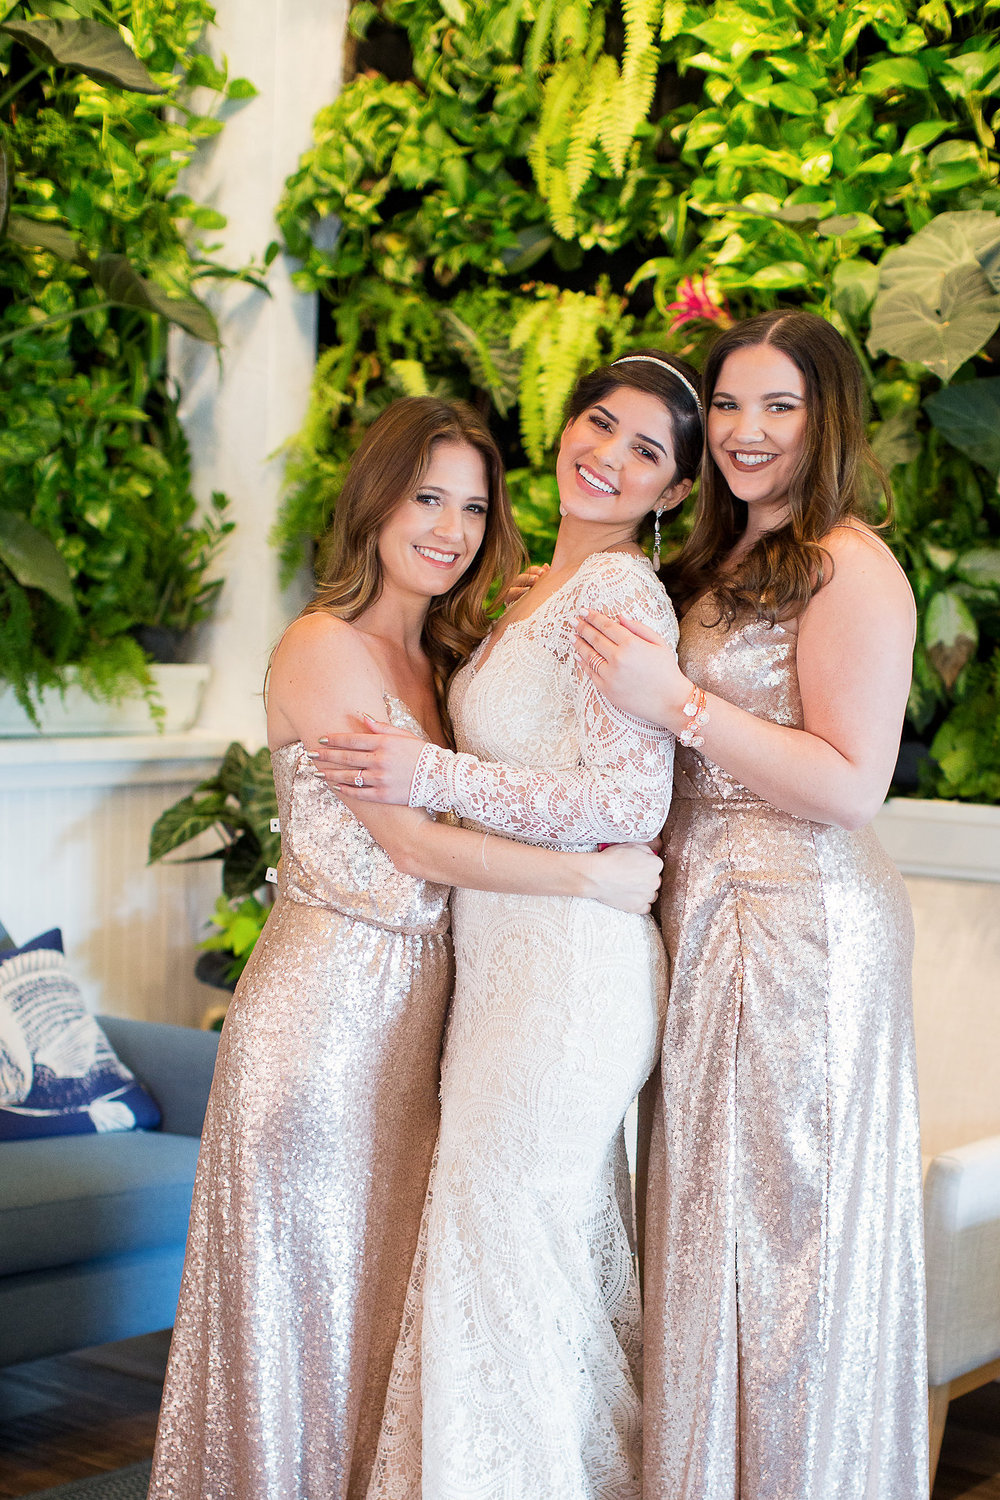 The beautiful Bride and her Bridesmaids! Jaime, Camila, and Ashley